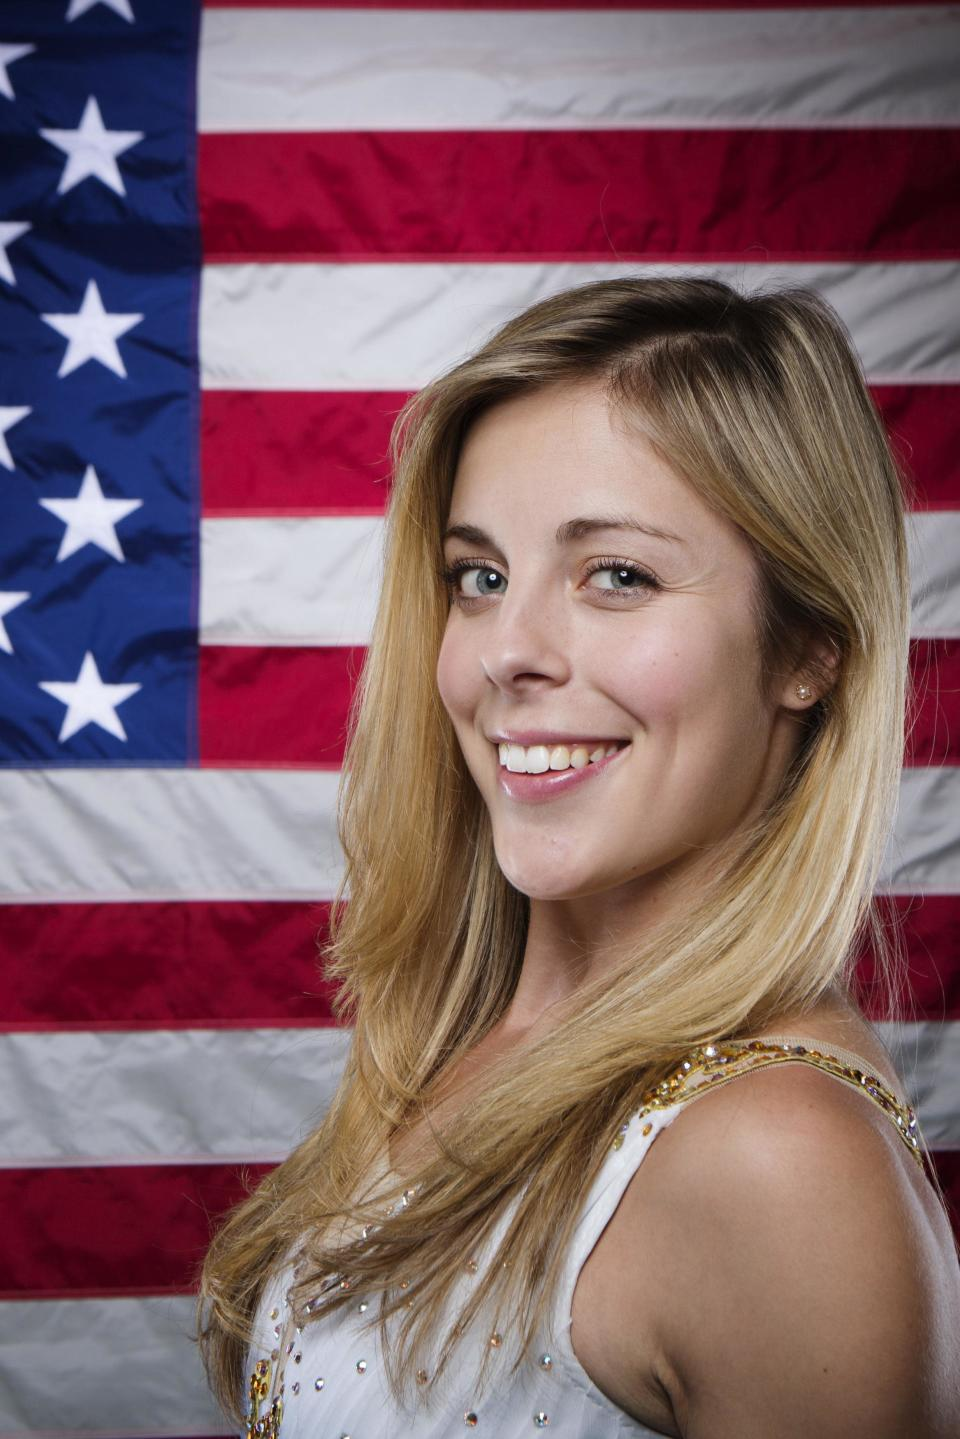 Olympic figure skater Ashley Wagner poses for a portrait during the 2013 U.S. Olympic Team Media Summit in Park City, Utah September 30, 2013. REUTERS/Lucas Jackson (UNITED STATES - Tags: SPORT OLYMPICS FIGURE SKATING PORTRAIT)